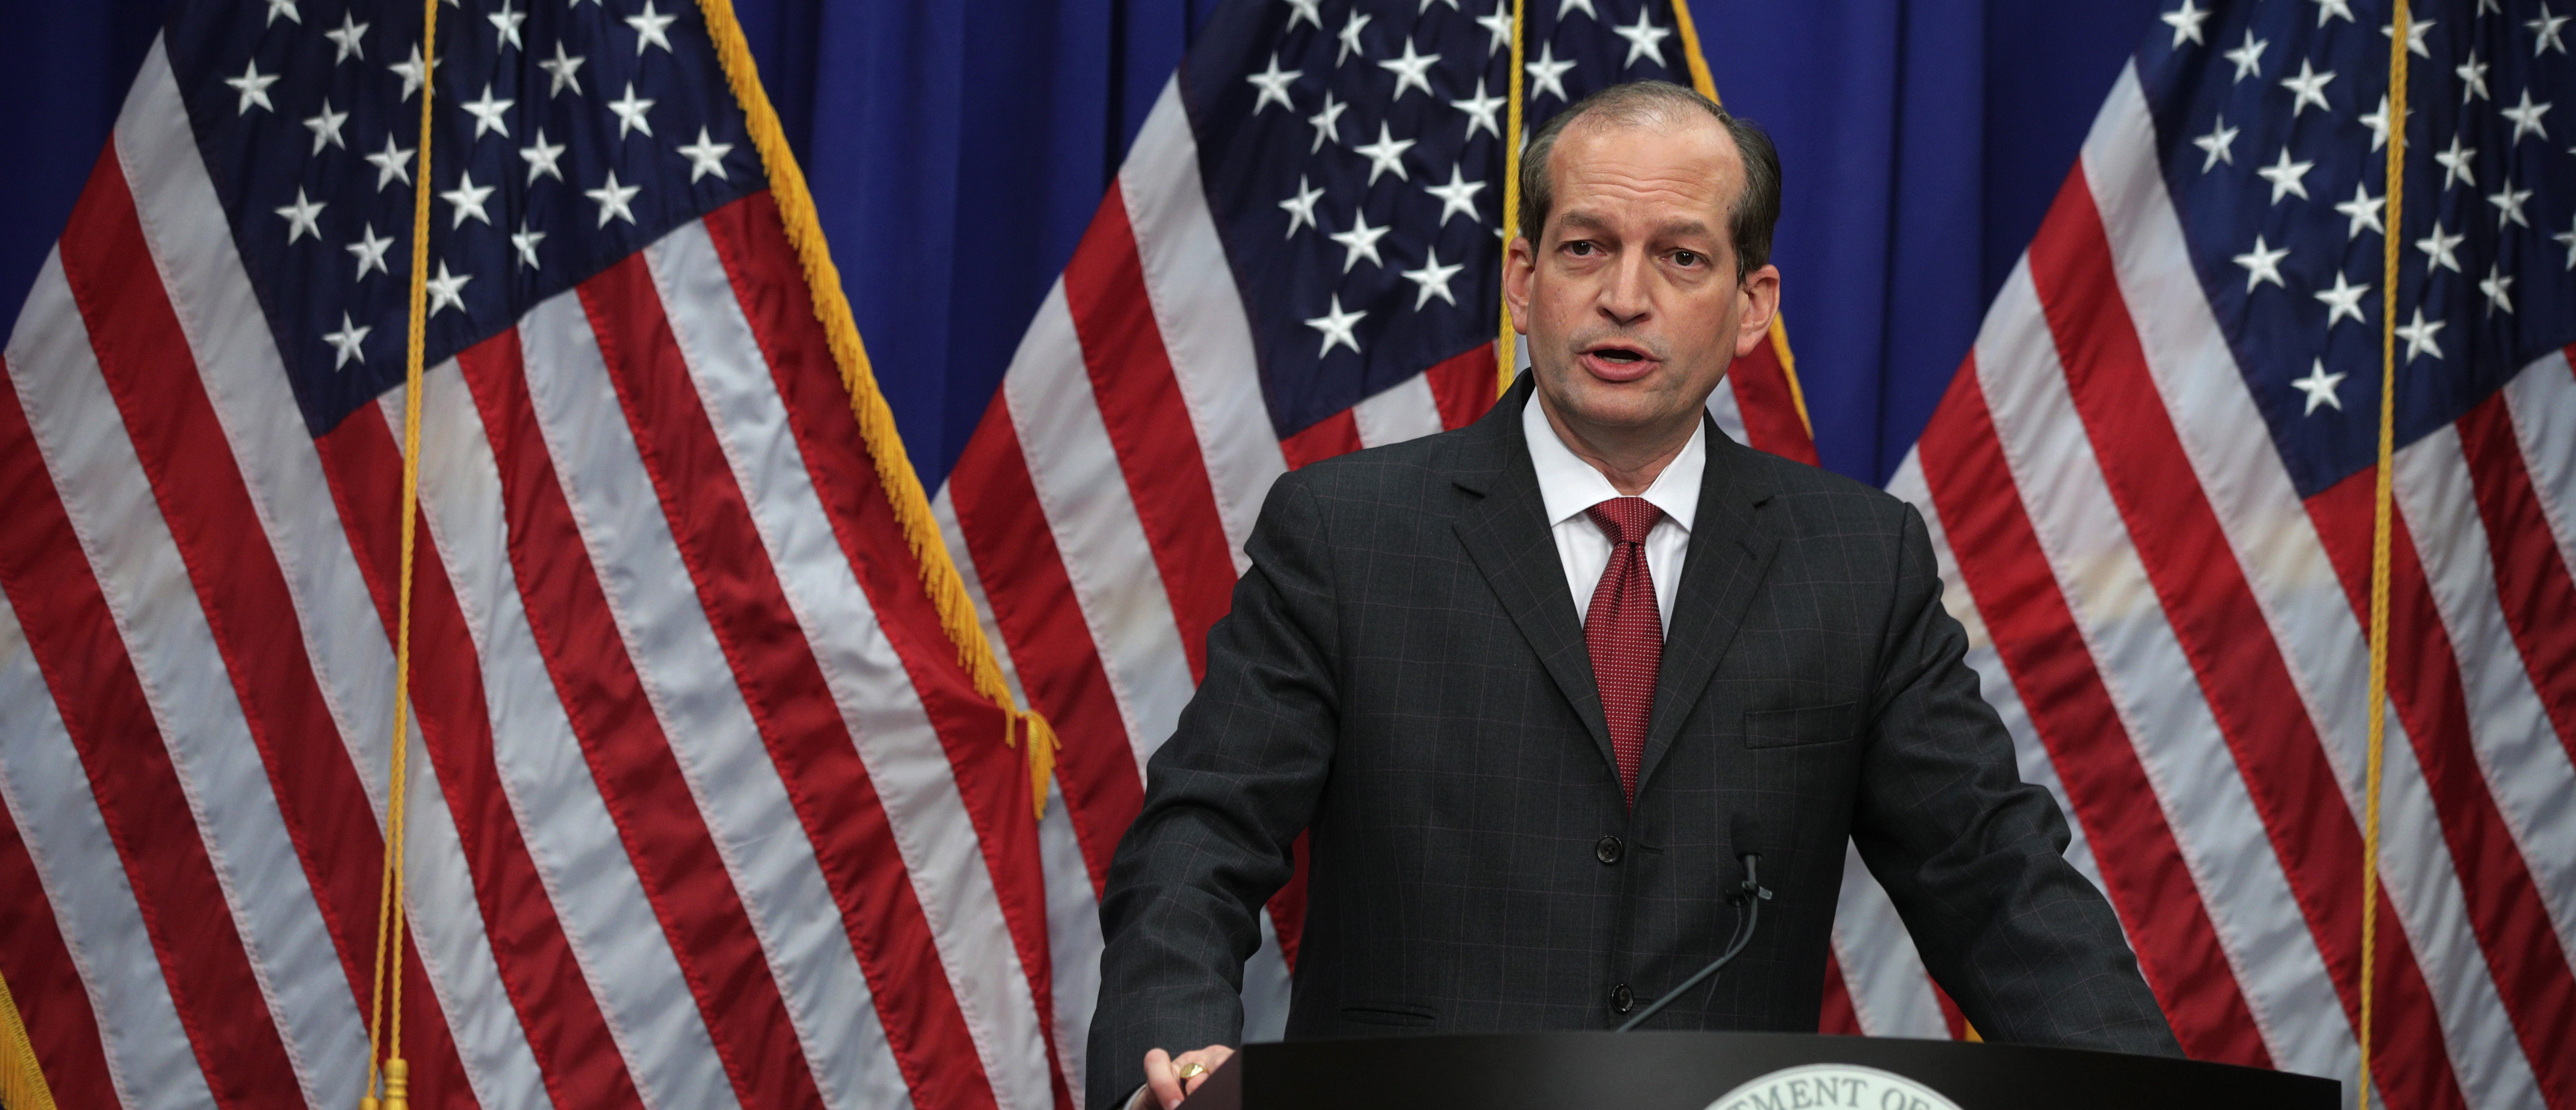 U.S. Secretary of Labor Alex Acosta speaks during a press conference July 10, 2019 at the Labor Department in Washington, DC. Secretary Acosta discussed his role in the sexual abuse case of accused sex trafficker Jeffrey Epstein. (Alex Wong/Getty Images)